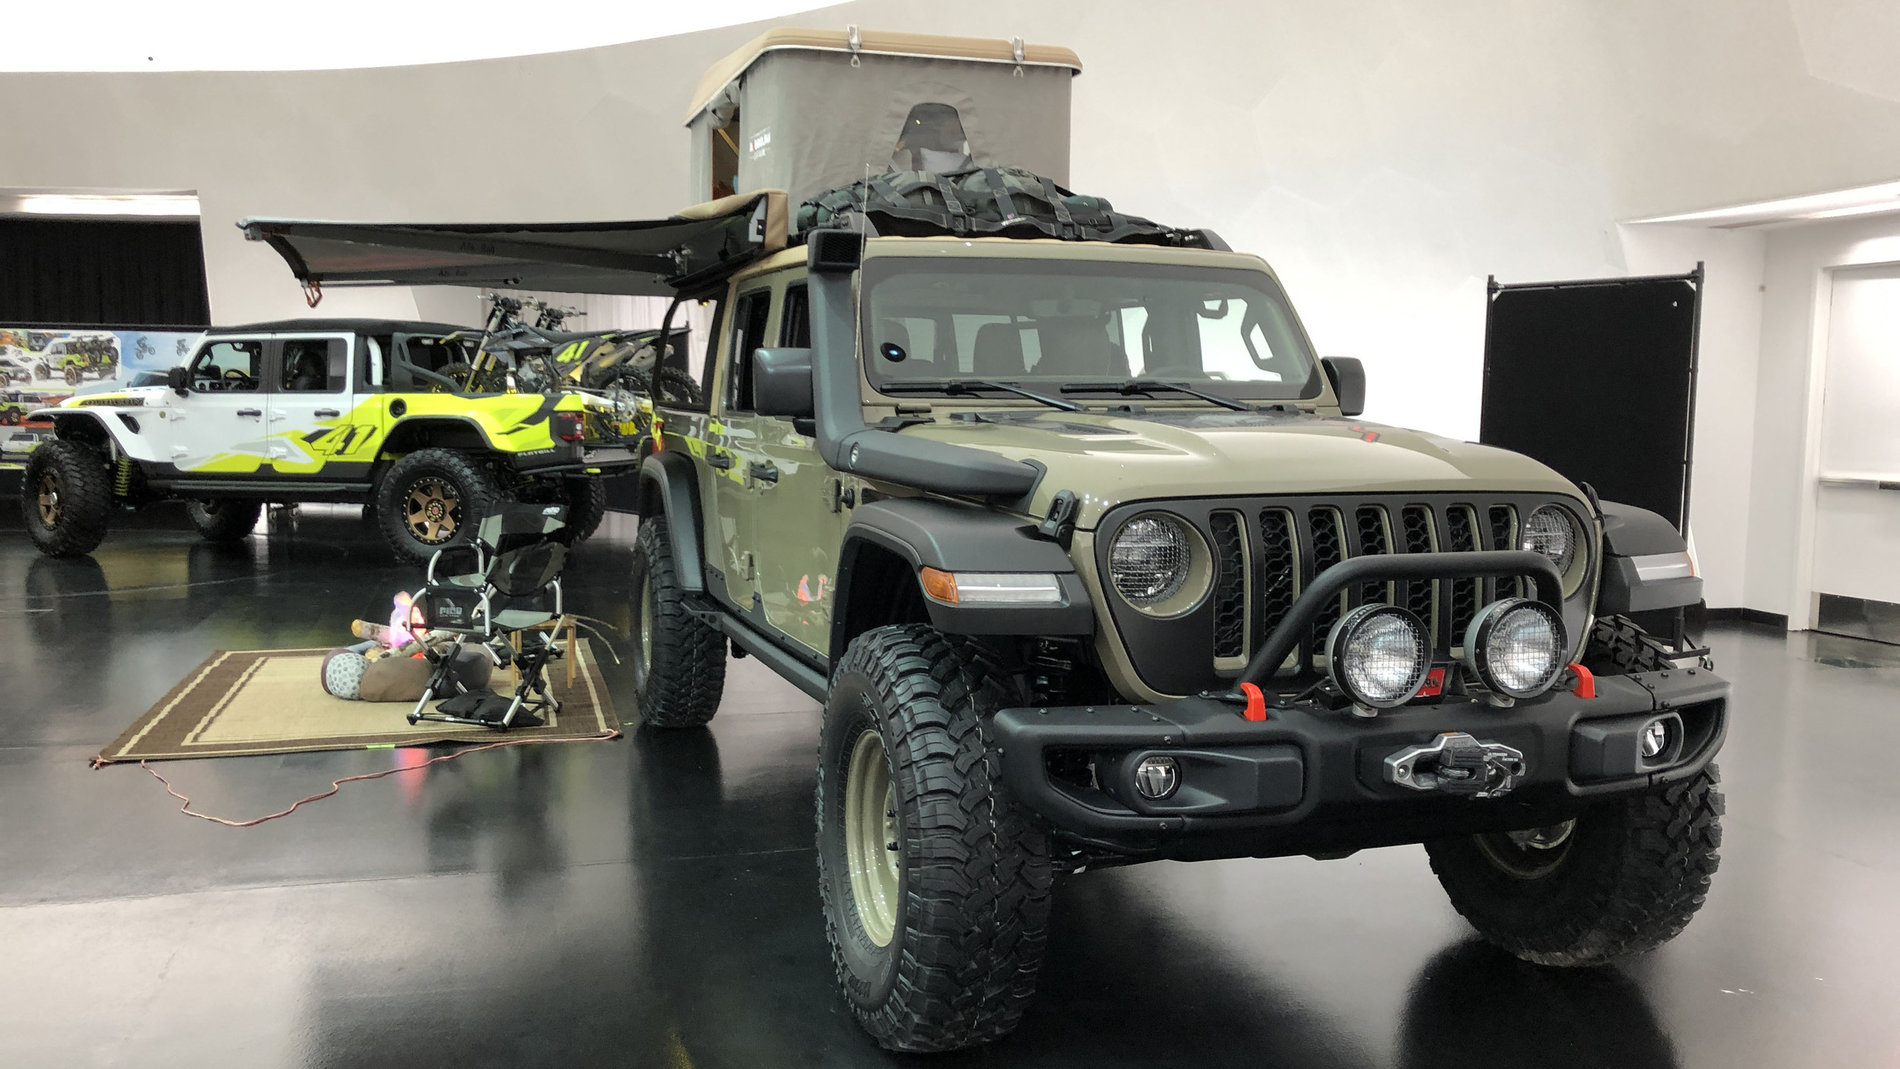 Jeep Gladiator Wayout Concept In Gator Color Jeep